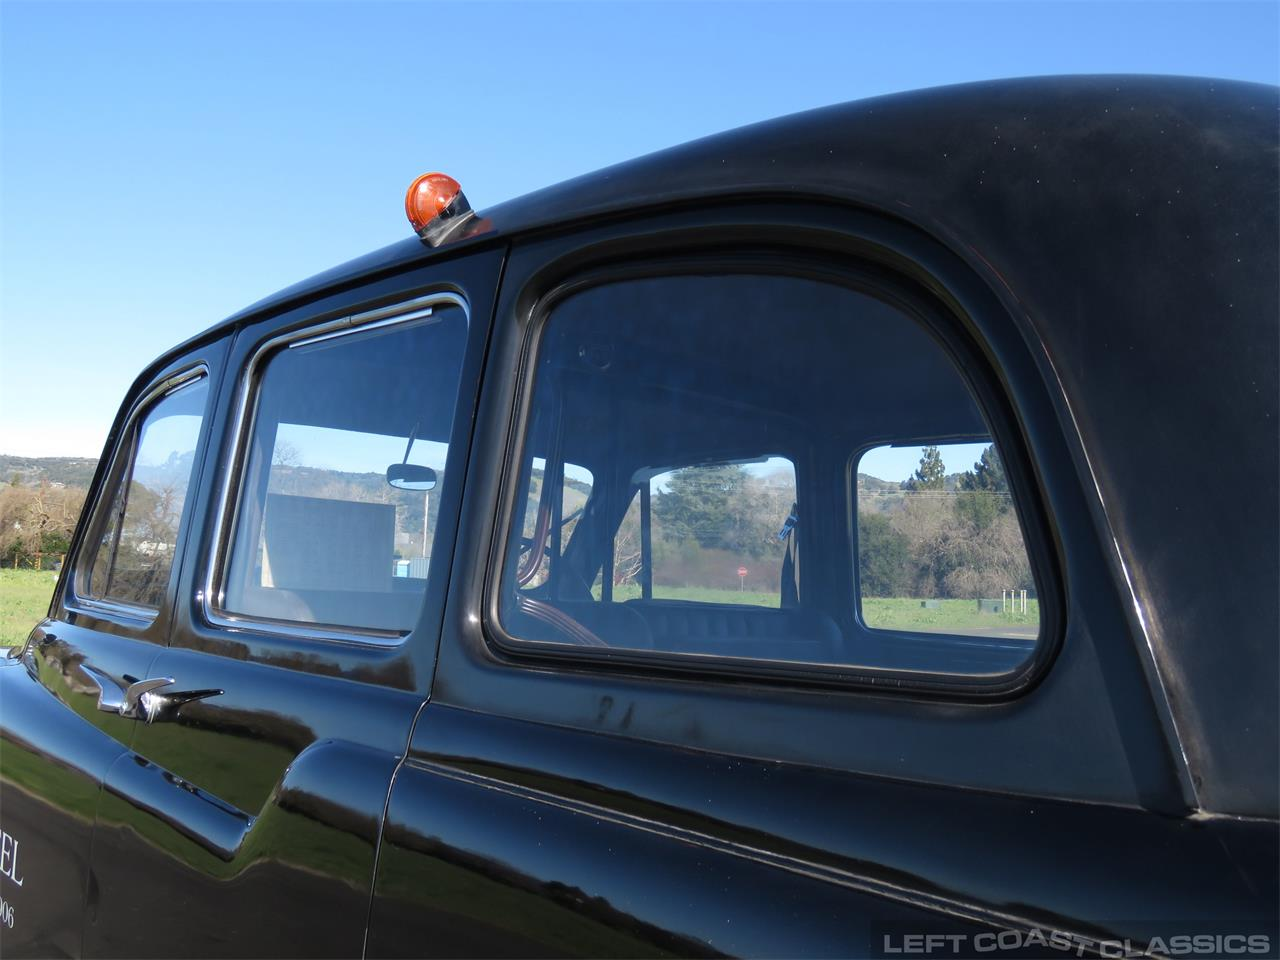 Large Picture of Classic 1967 FX4 Taxi Cab - $12,500.00 Offered by Left Coast Classics - PKBX